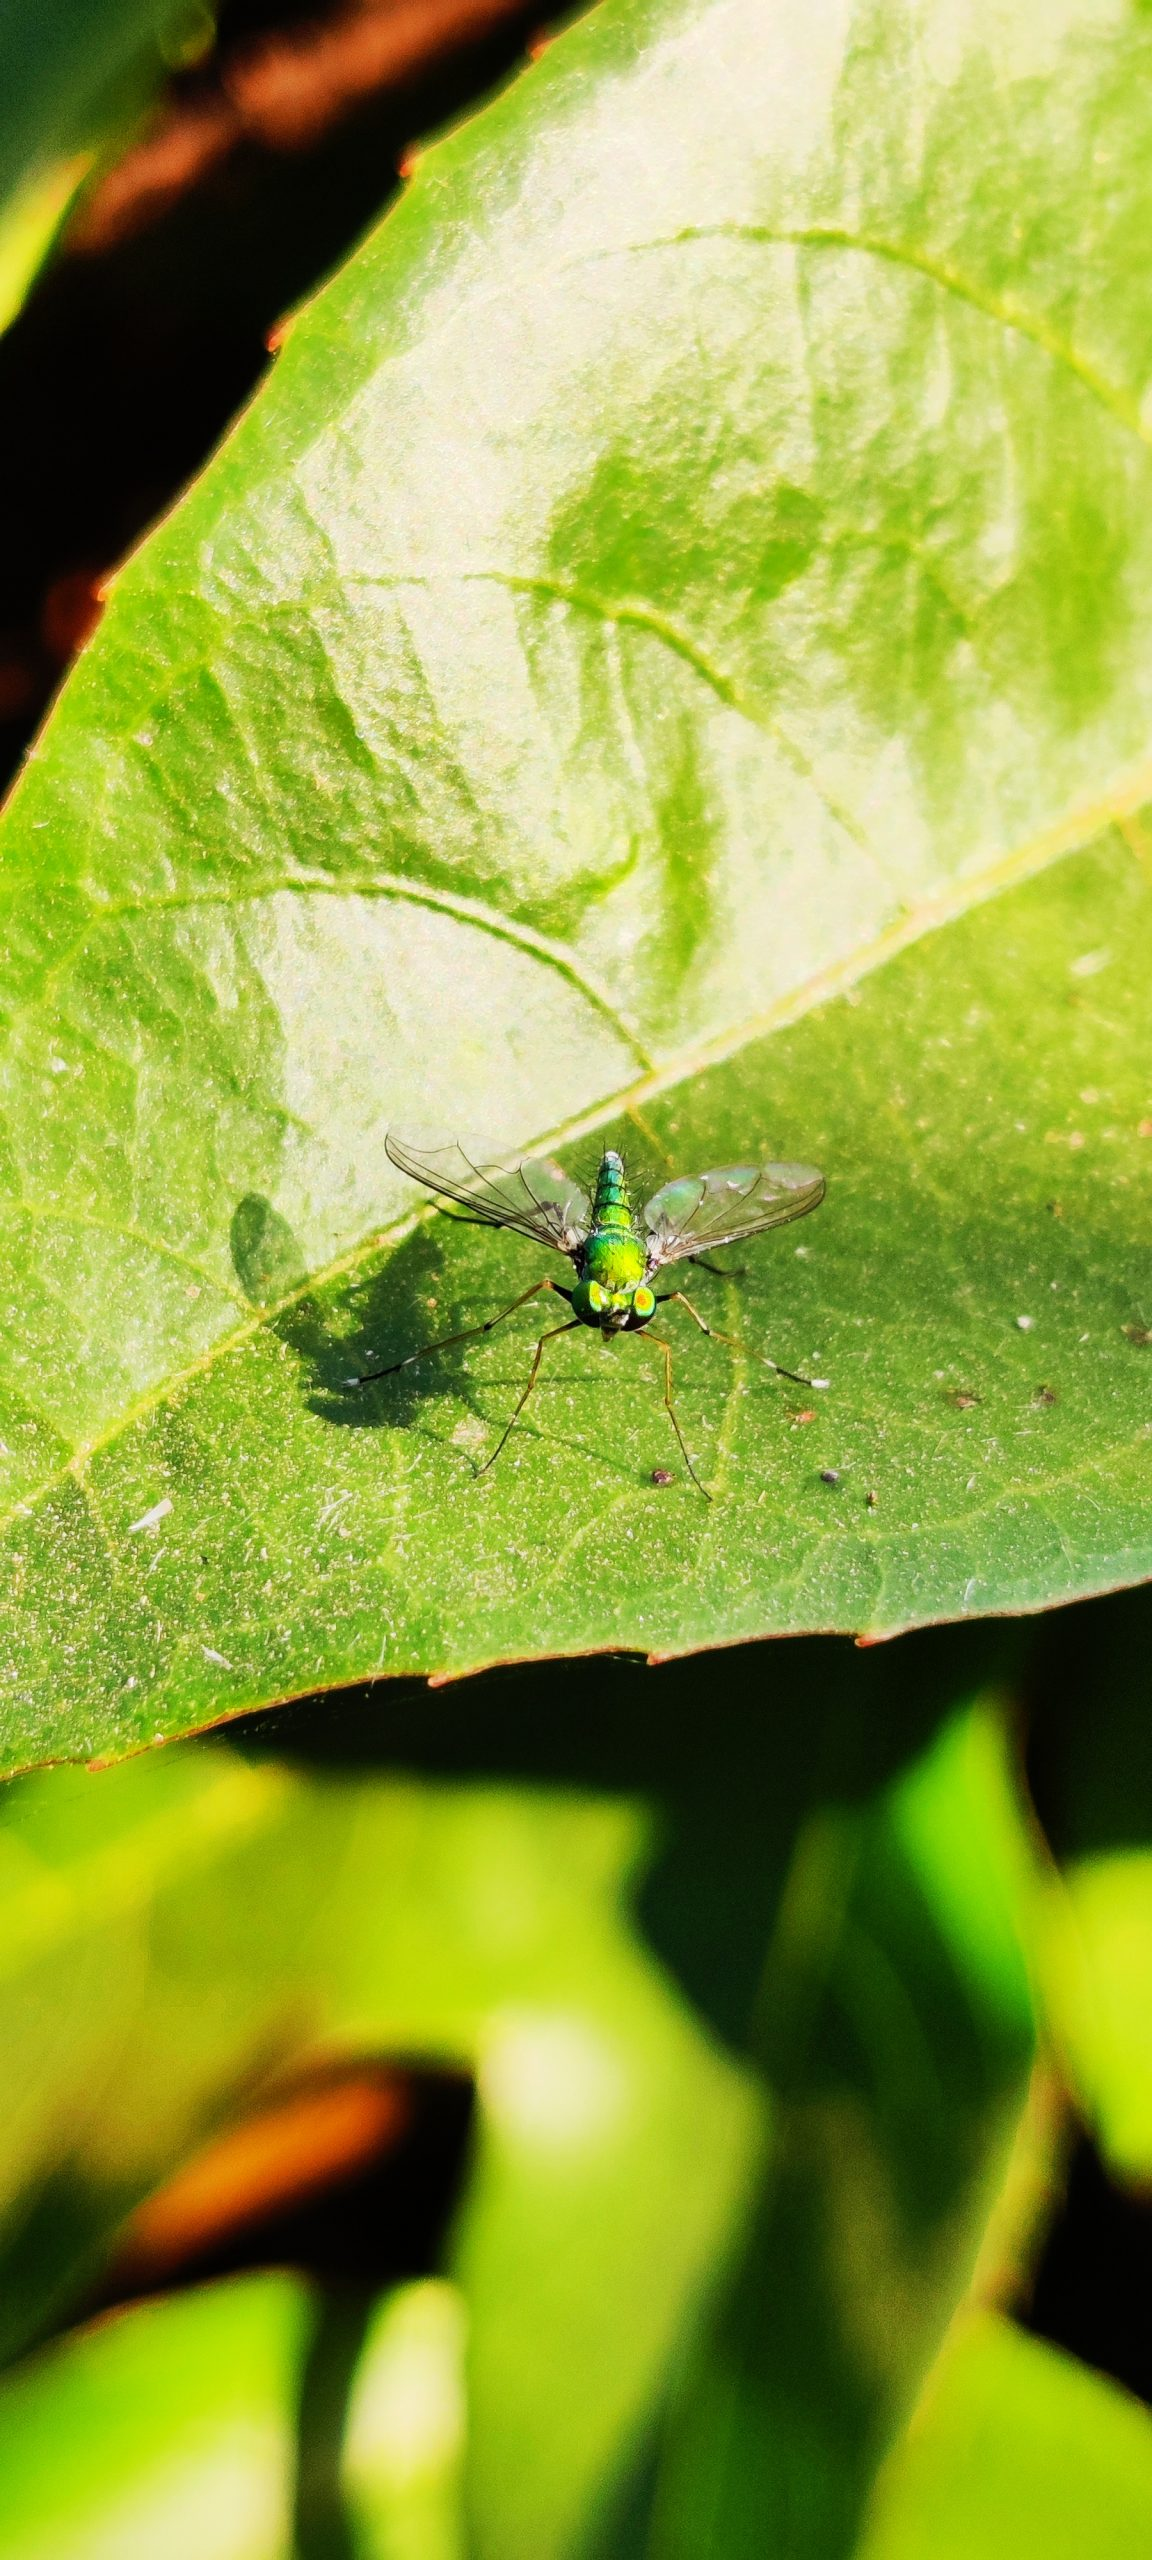 An insect on leaf